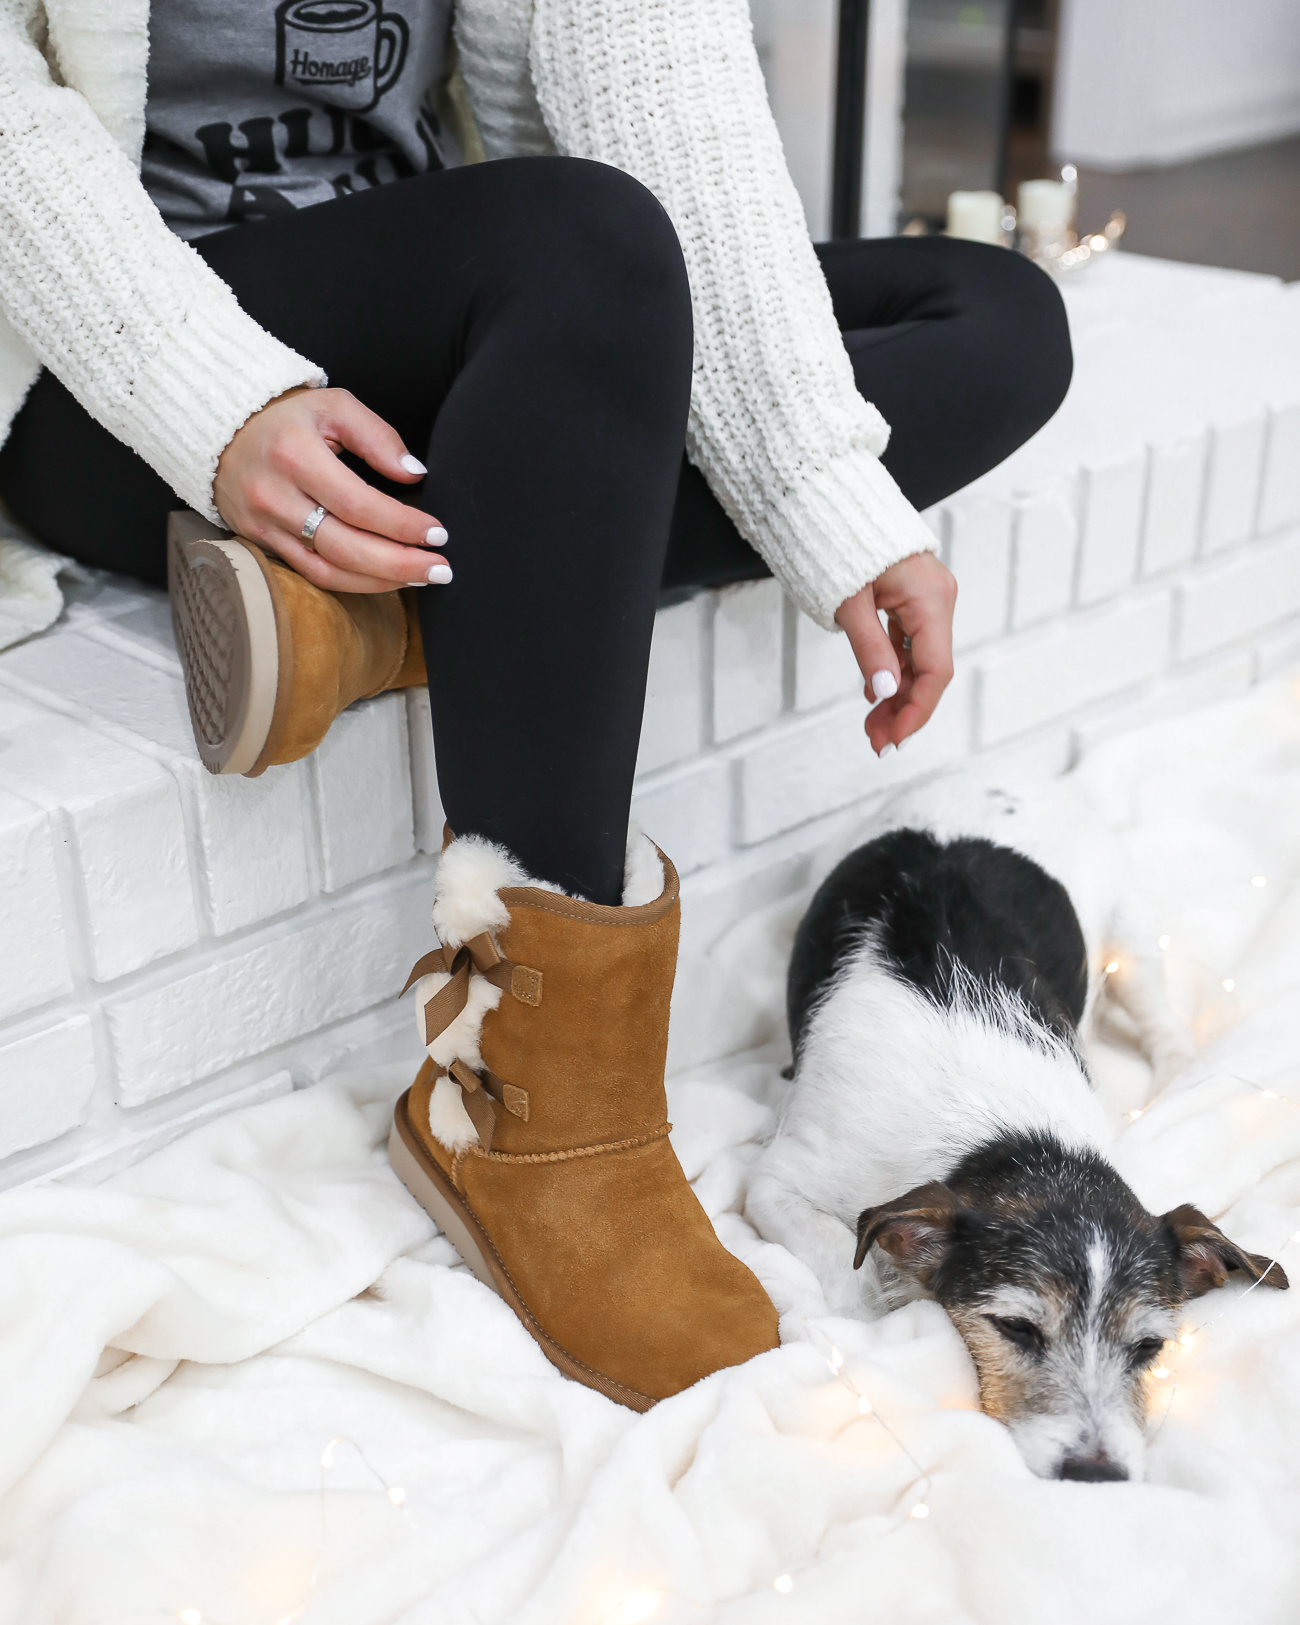 UGGS KOOLABURRA VICTORIA SHORT BOOTS CASUAL WINTER OUTFIT COFFEE TANK TOP WHITE CHENILLE CARDIGAN WHITE FARMHOUSE FIREPLACE LAURA BEVERLIN